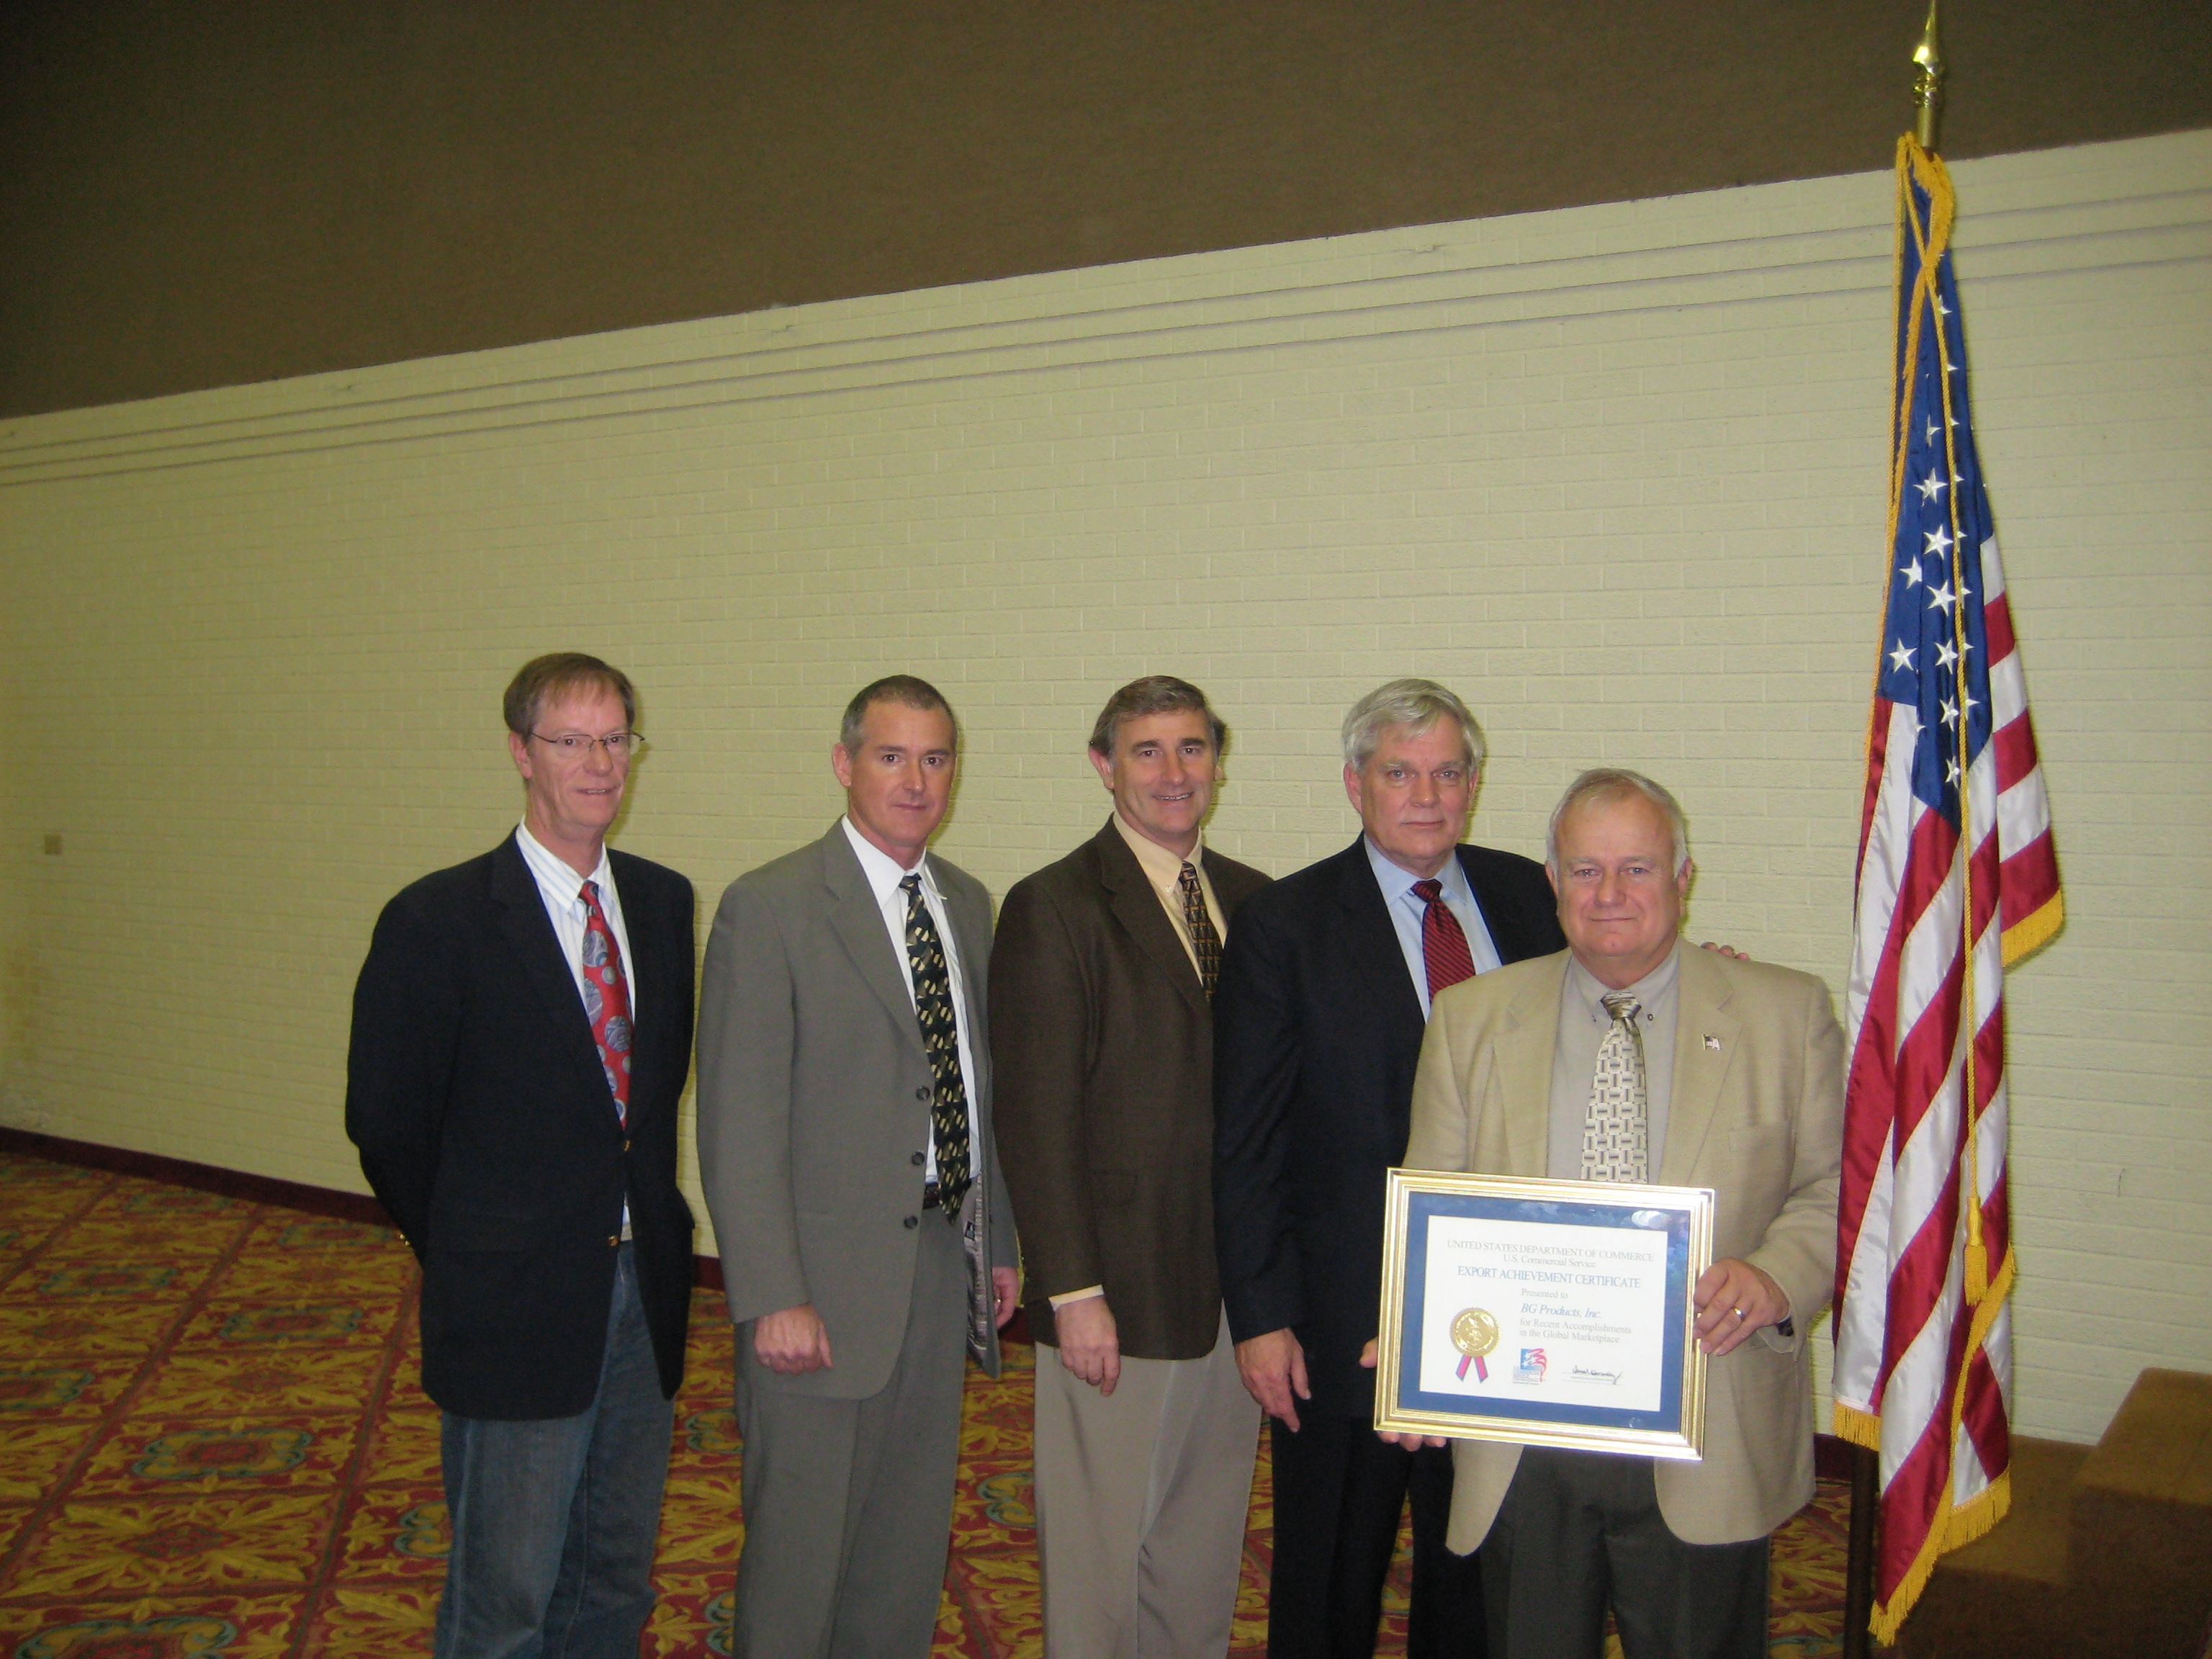 Photo of BG Products, Inc. receiving an Export Achievement Award from the Department of Commerce